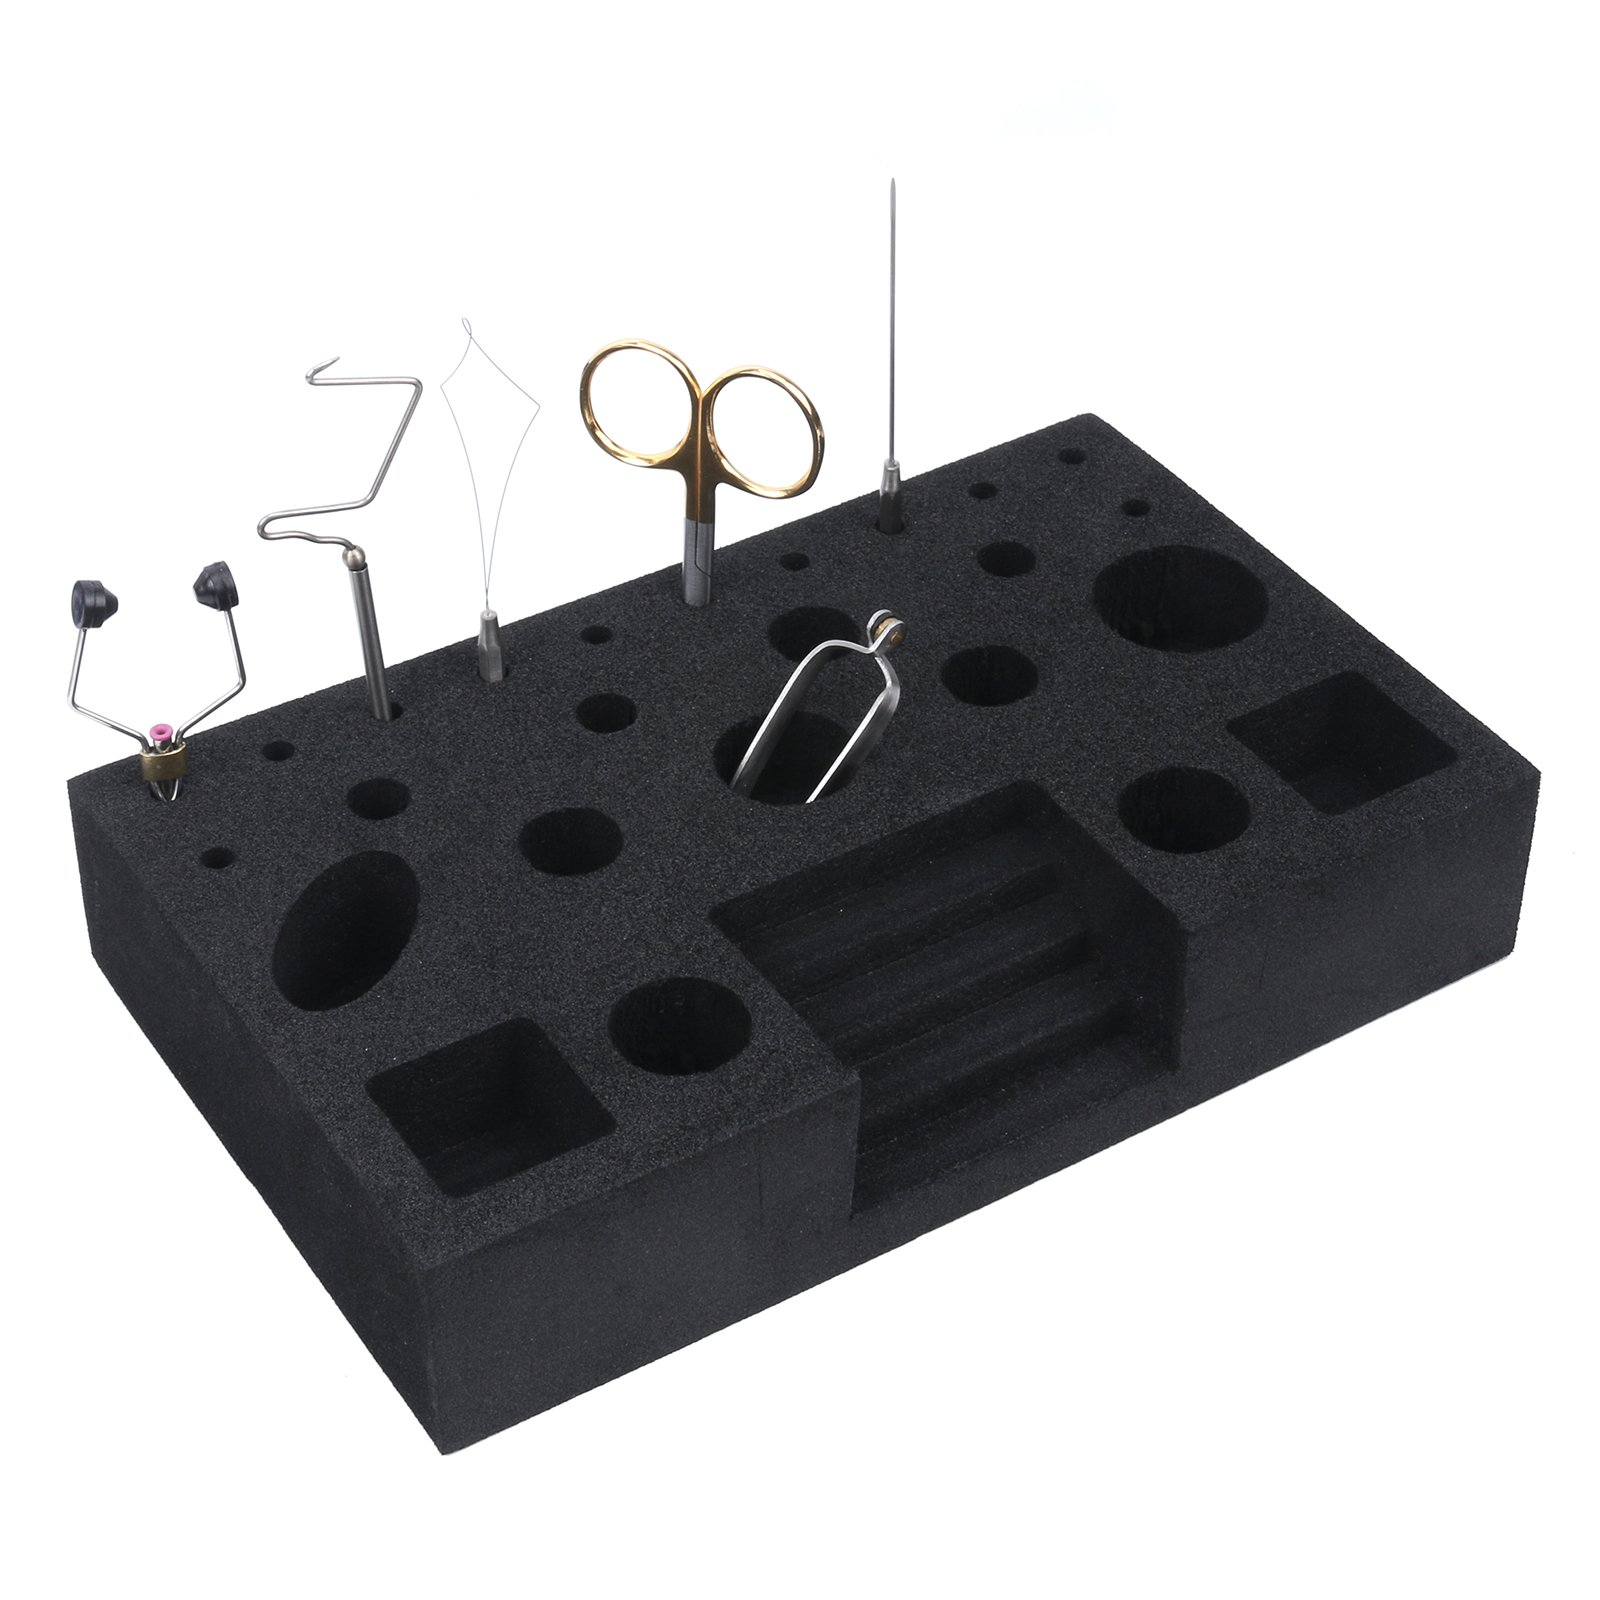 Maxcatch Fly Tying Tools with Tool Caddy(Included Scissors,Bobbin,Whip Finisher,Hackle Pliers,Bodkin,Bobbin Threader)